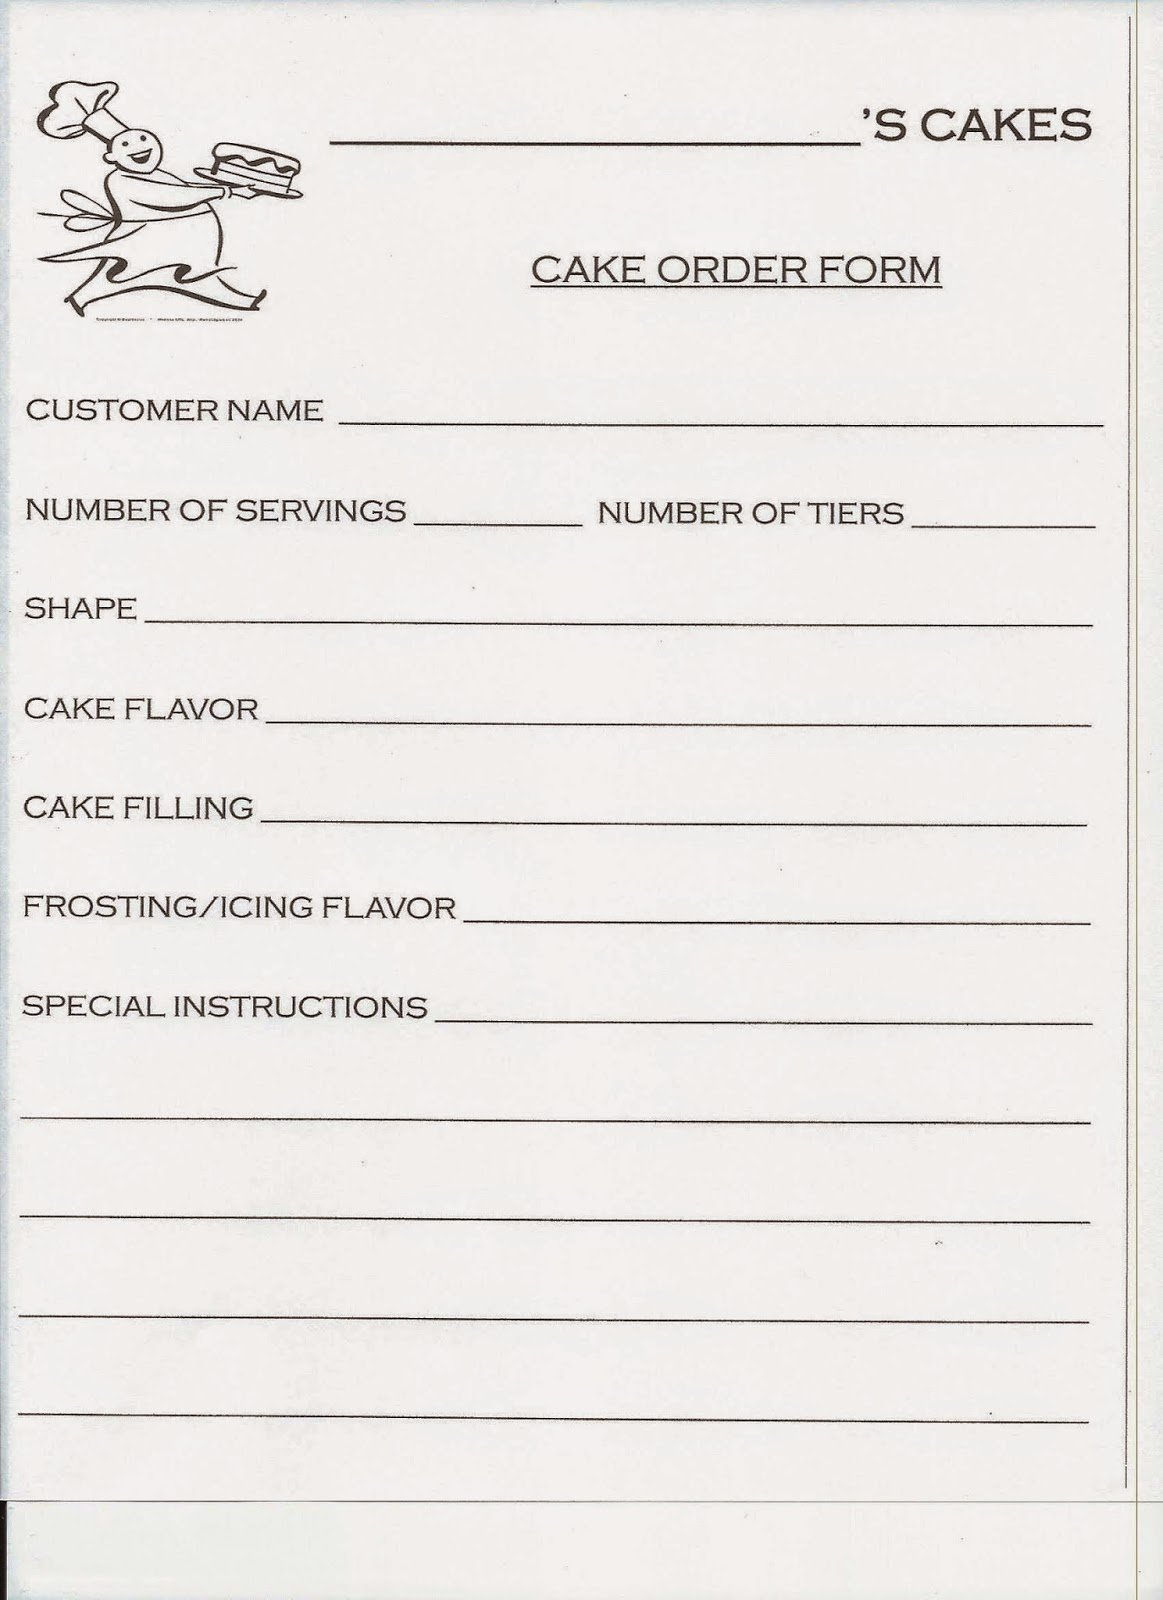 Cake order form Templates New Spark and All Jake Bakes Cakes